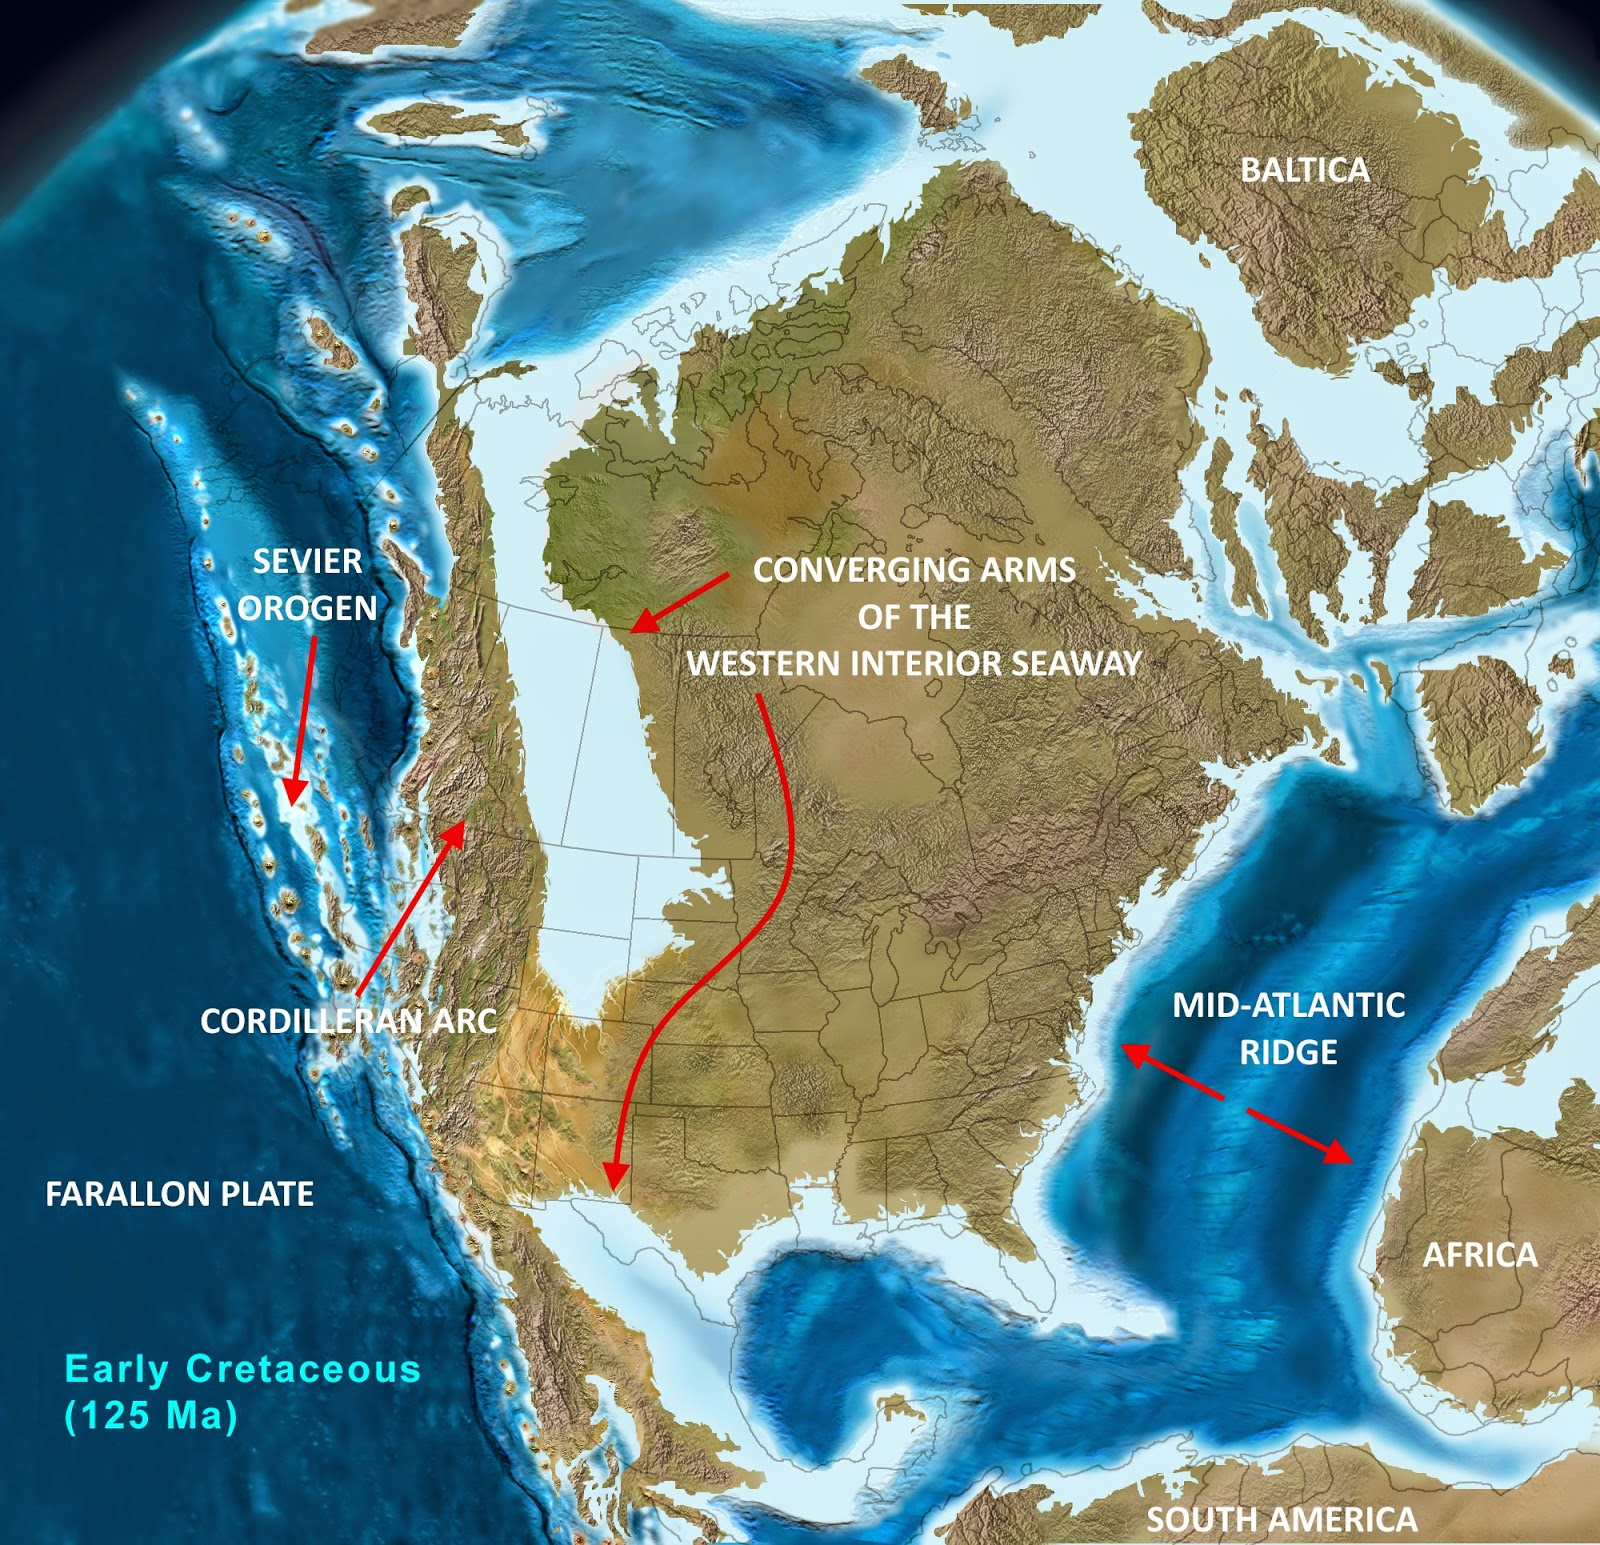 North American Tectonics During The Early Cretaceous (125 Ma) Two Large  Arms Of The Rising Sea Are About To Converge, Held Up Temporarily By  Tectonic ...